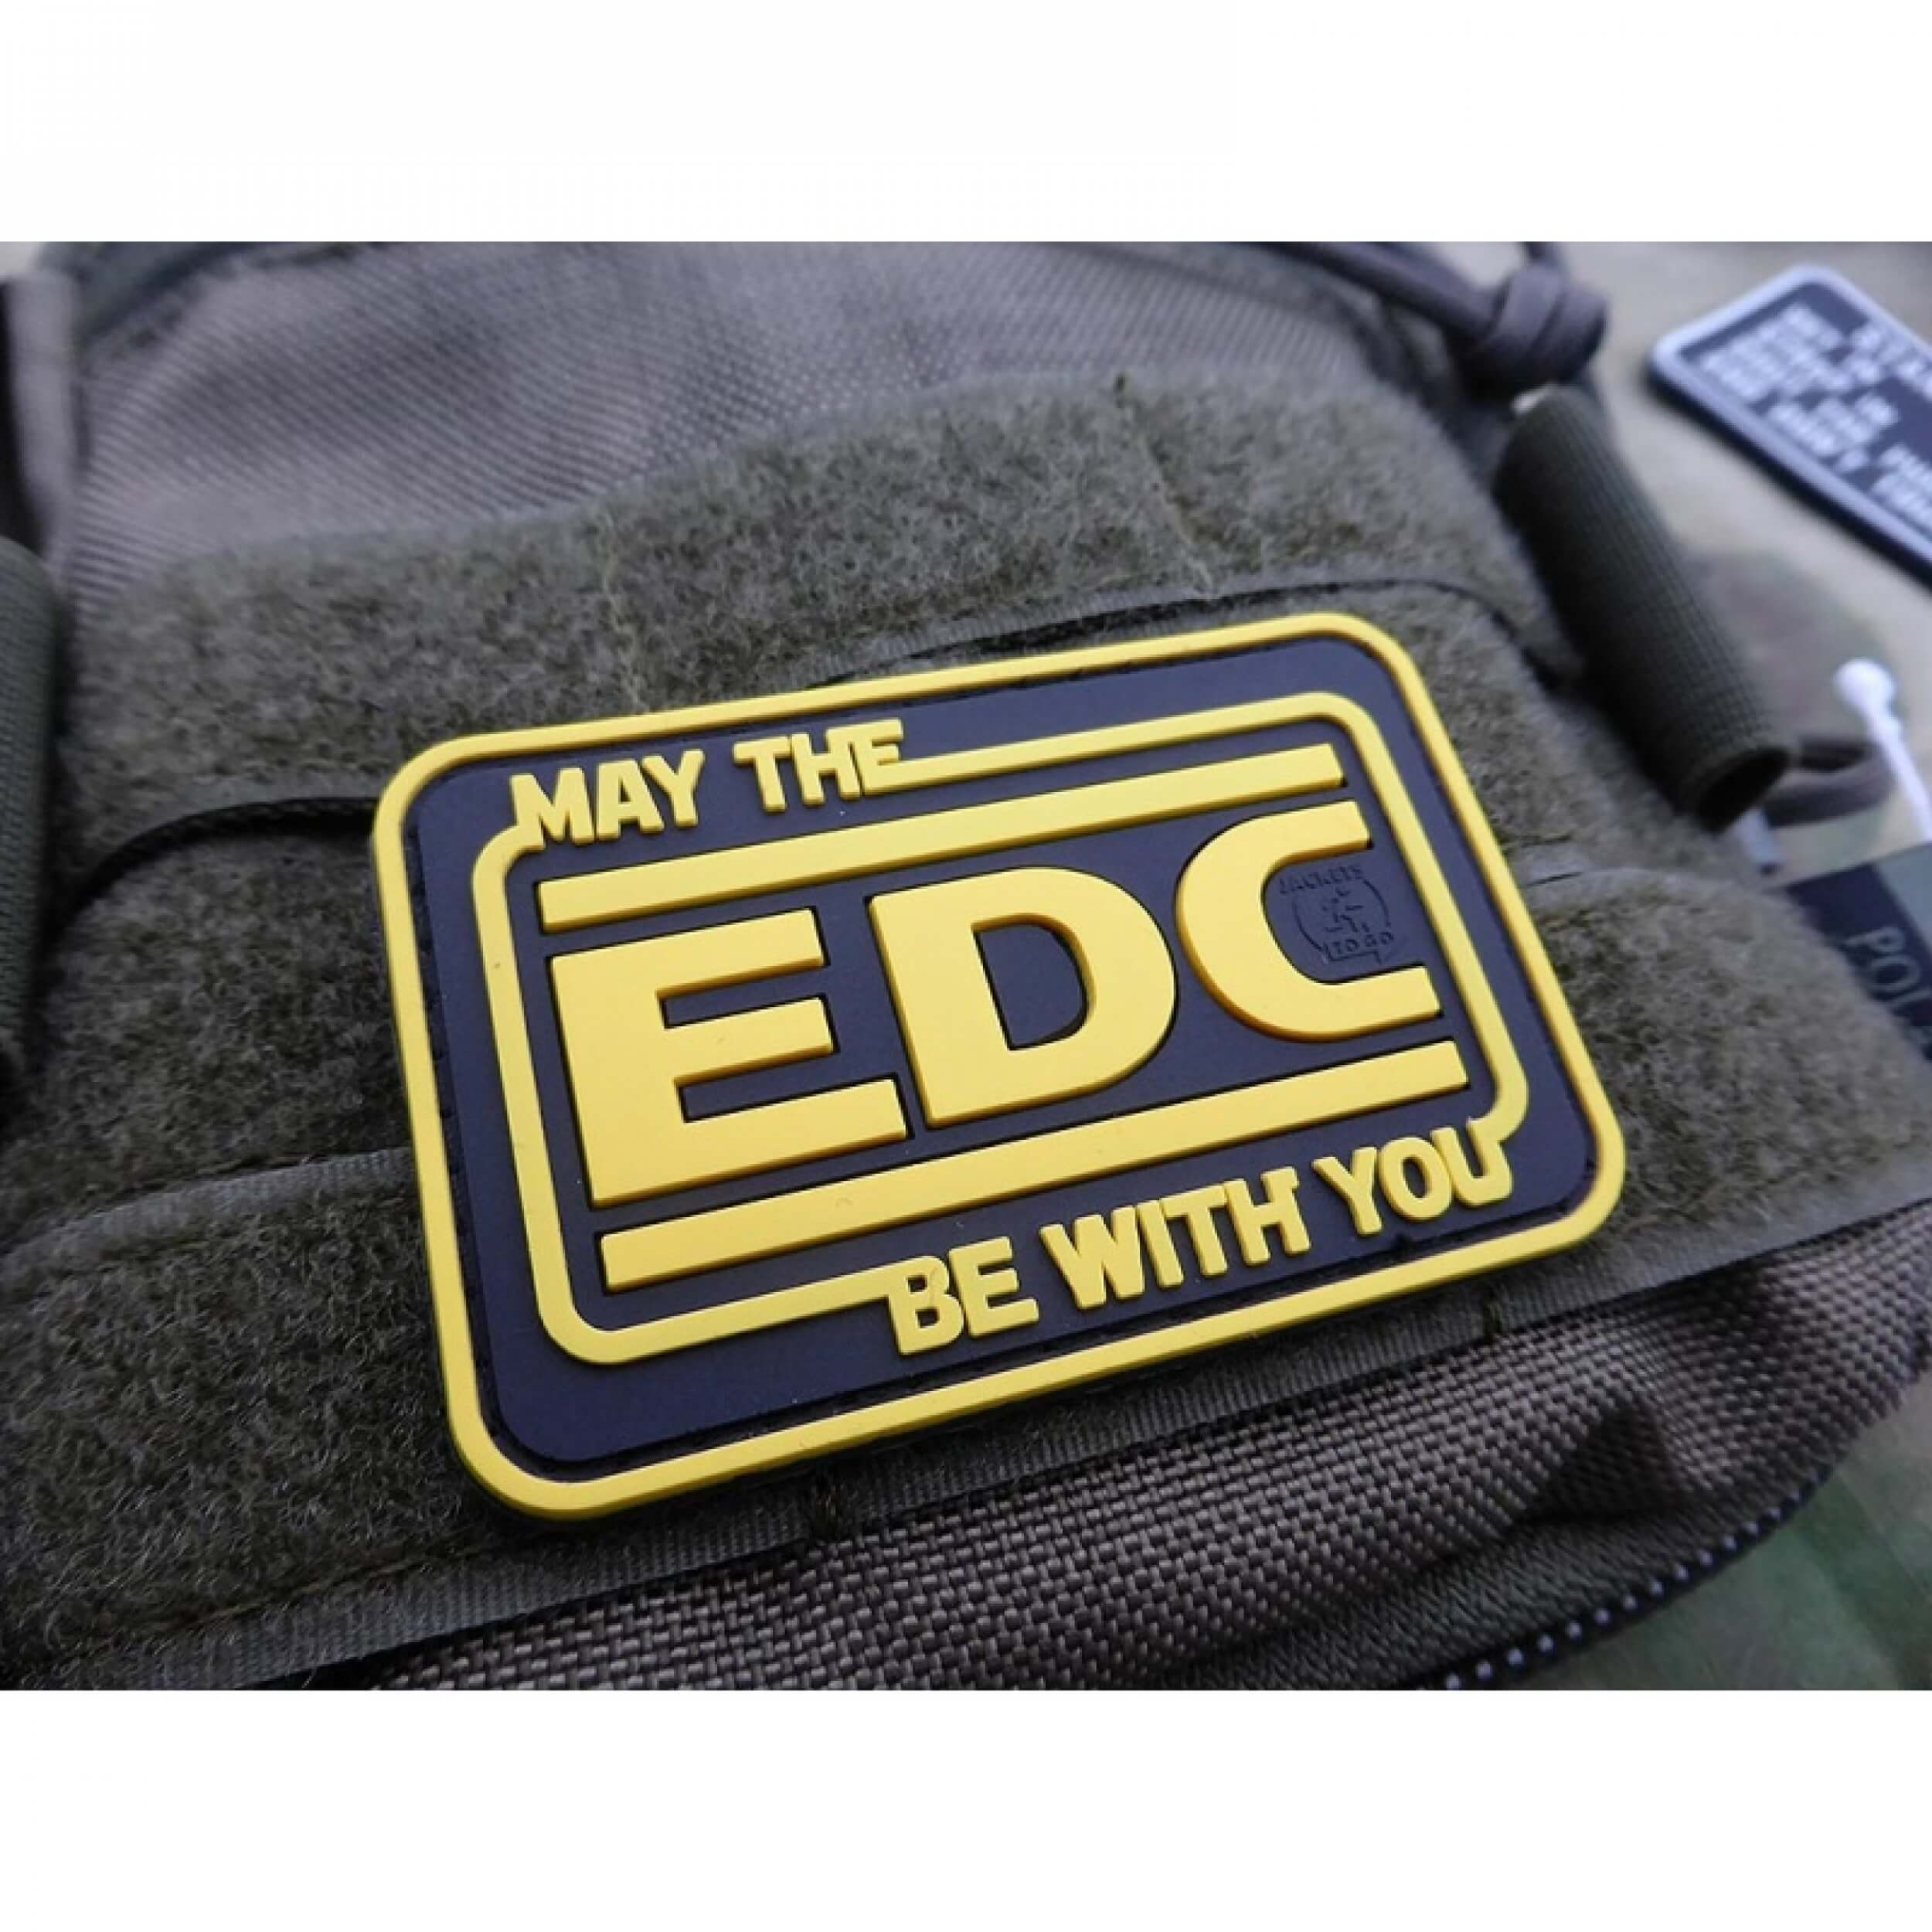 JTG EDC / Every Day Carry Patch, fullcolour